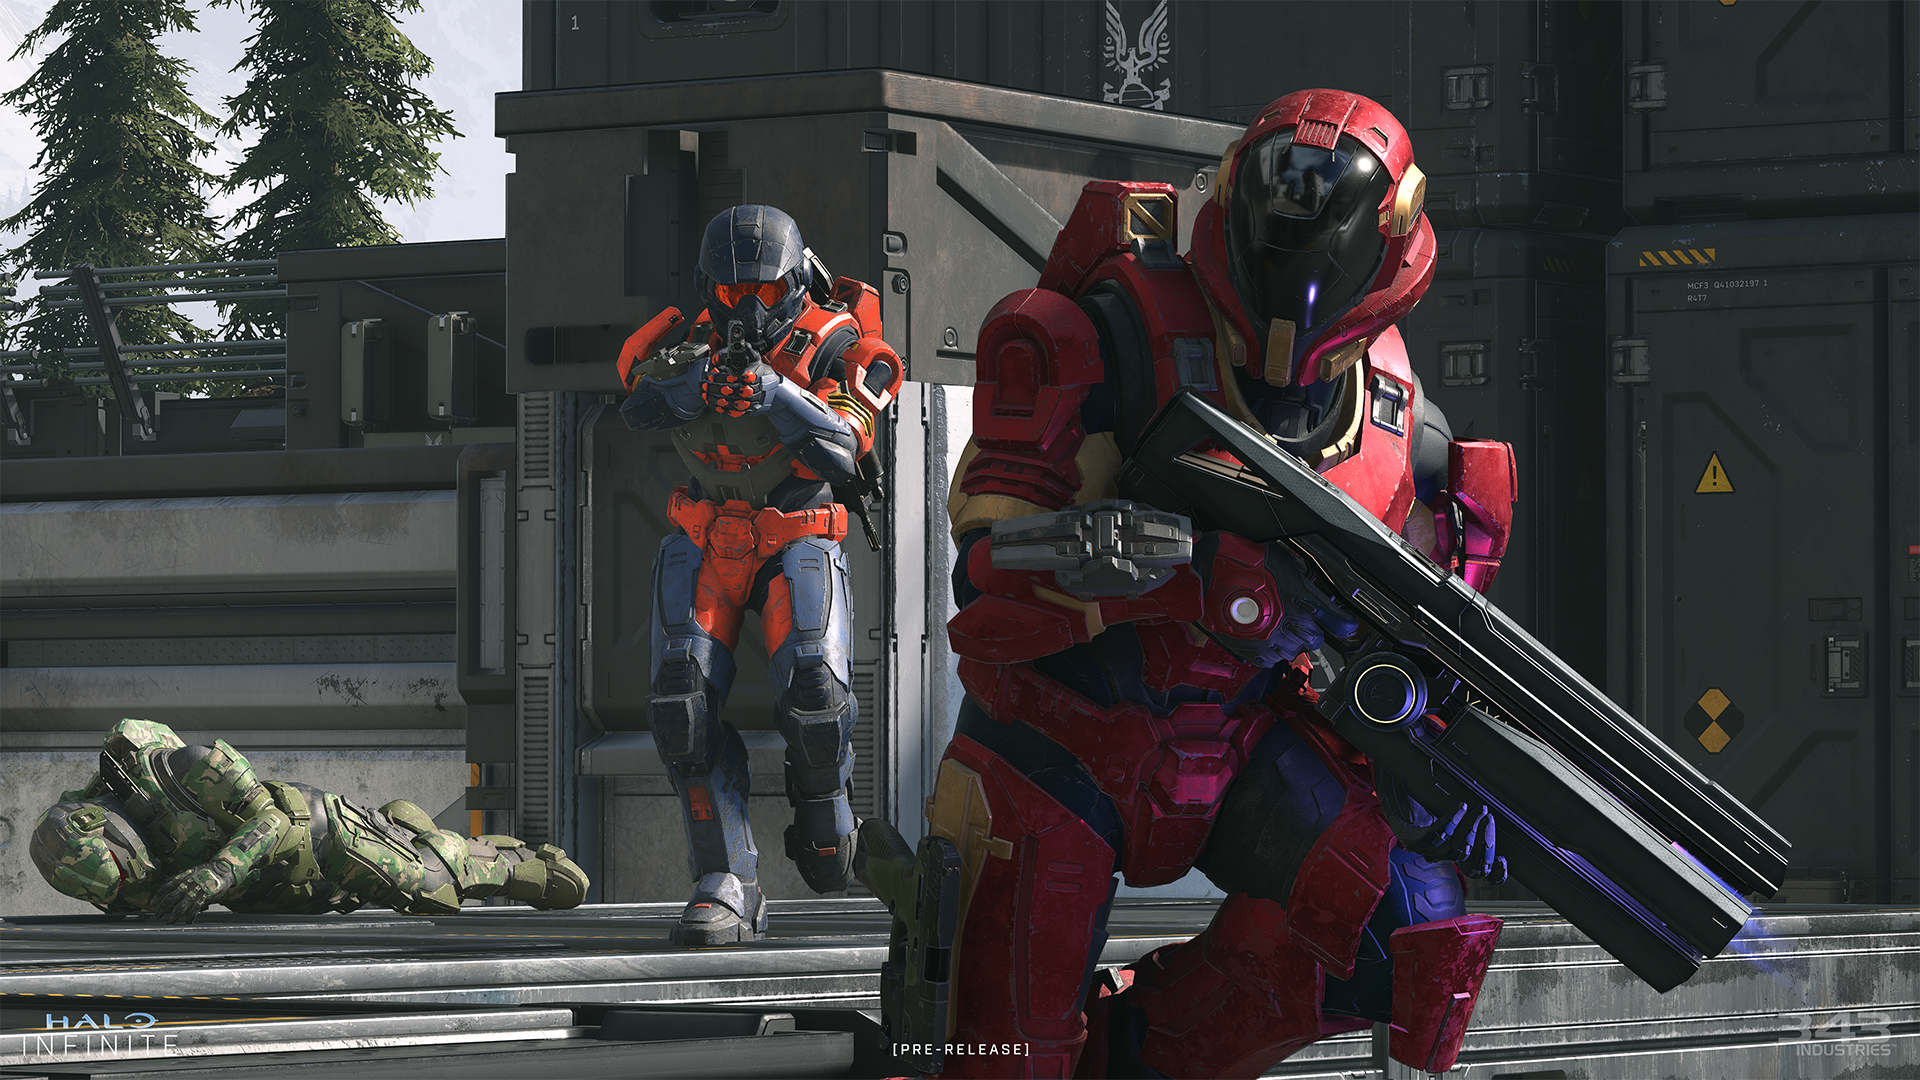 Two Spartans battling in Halo Infinite multiplayer